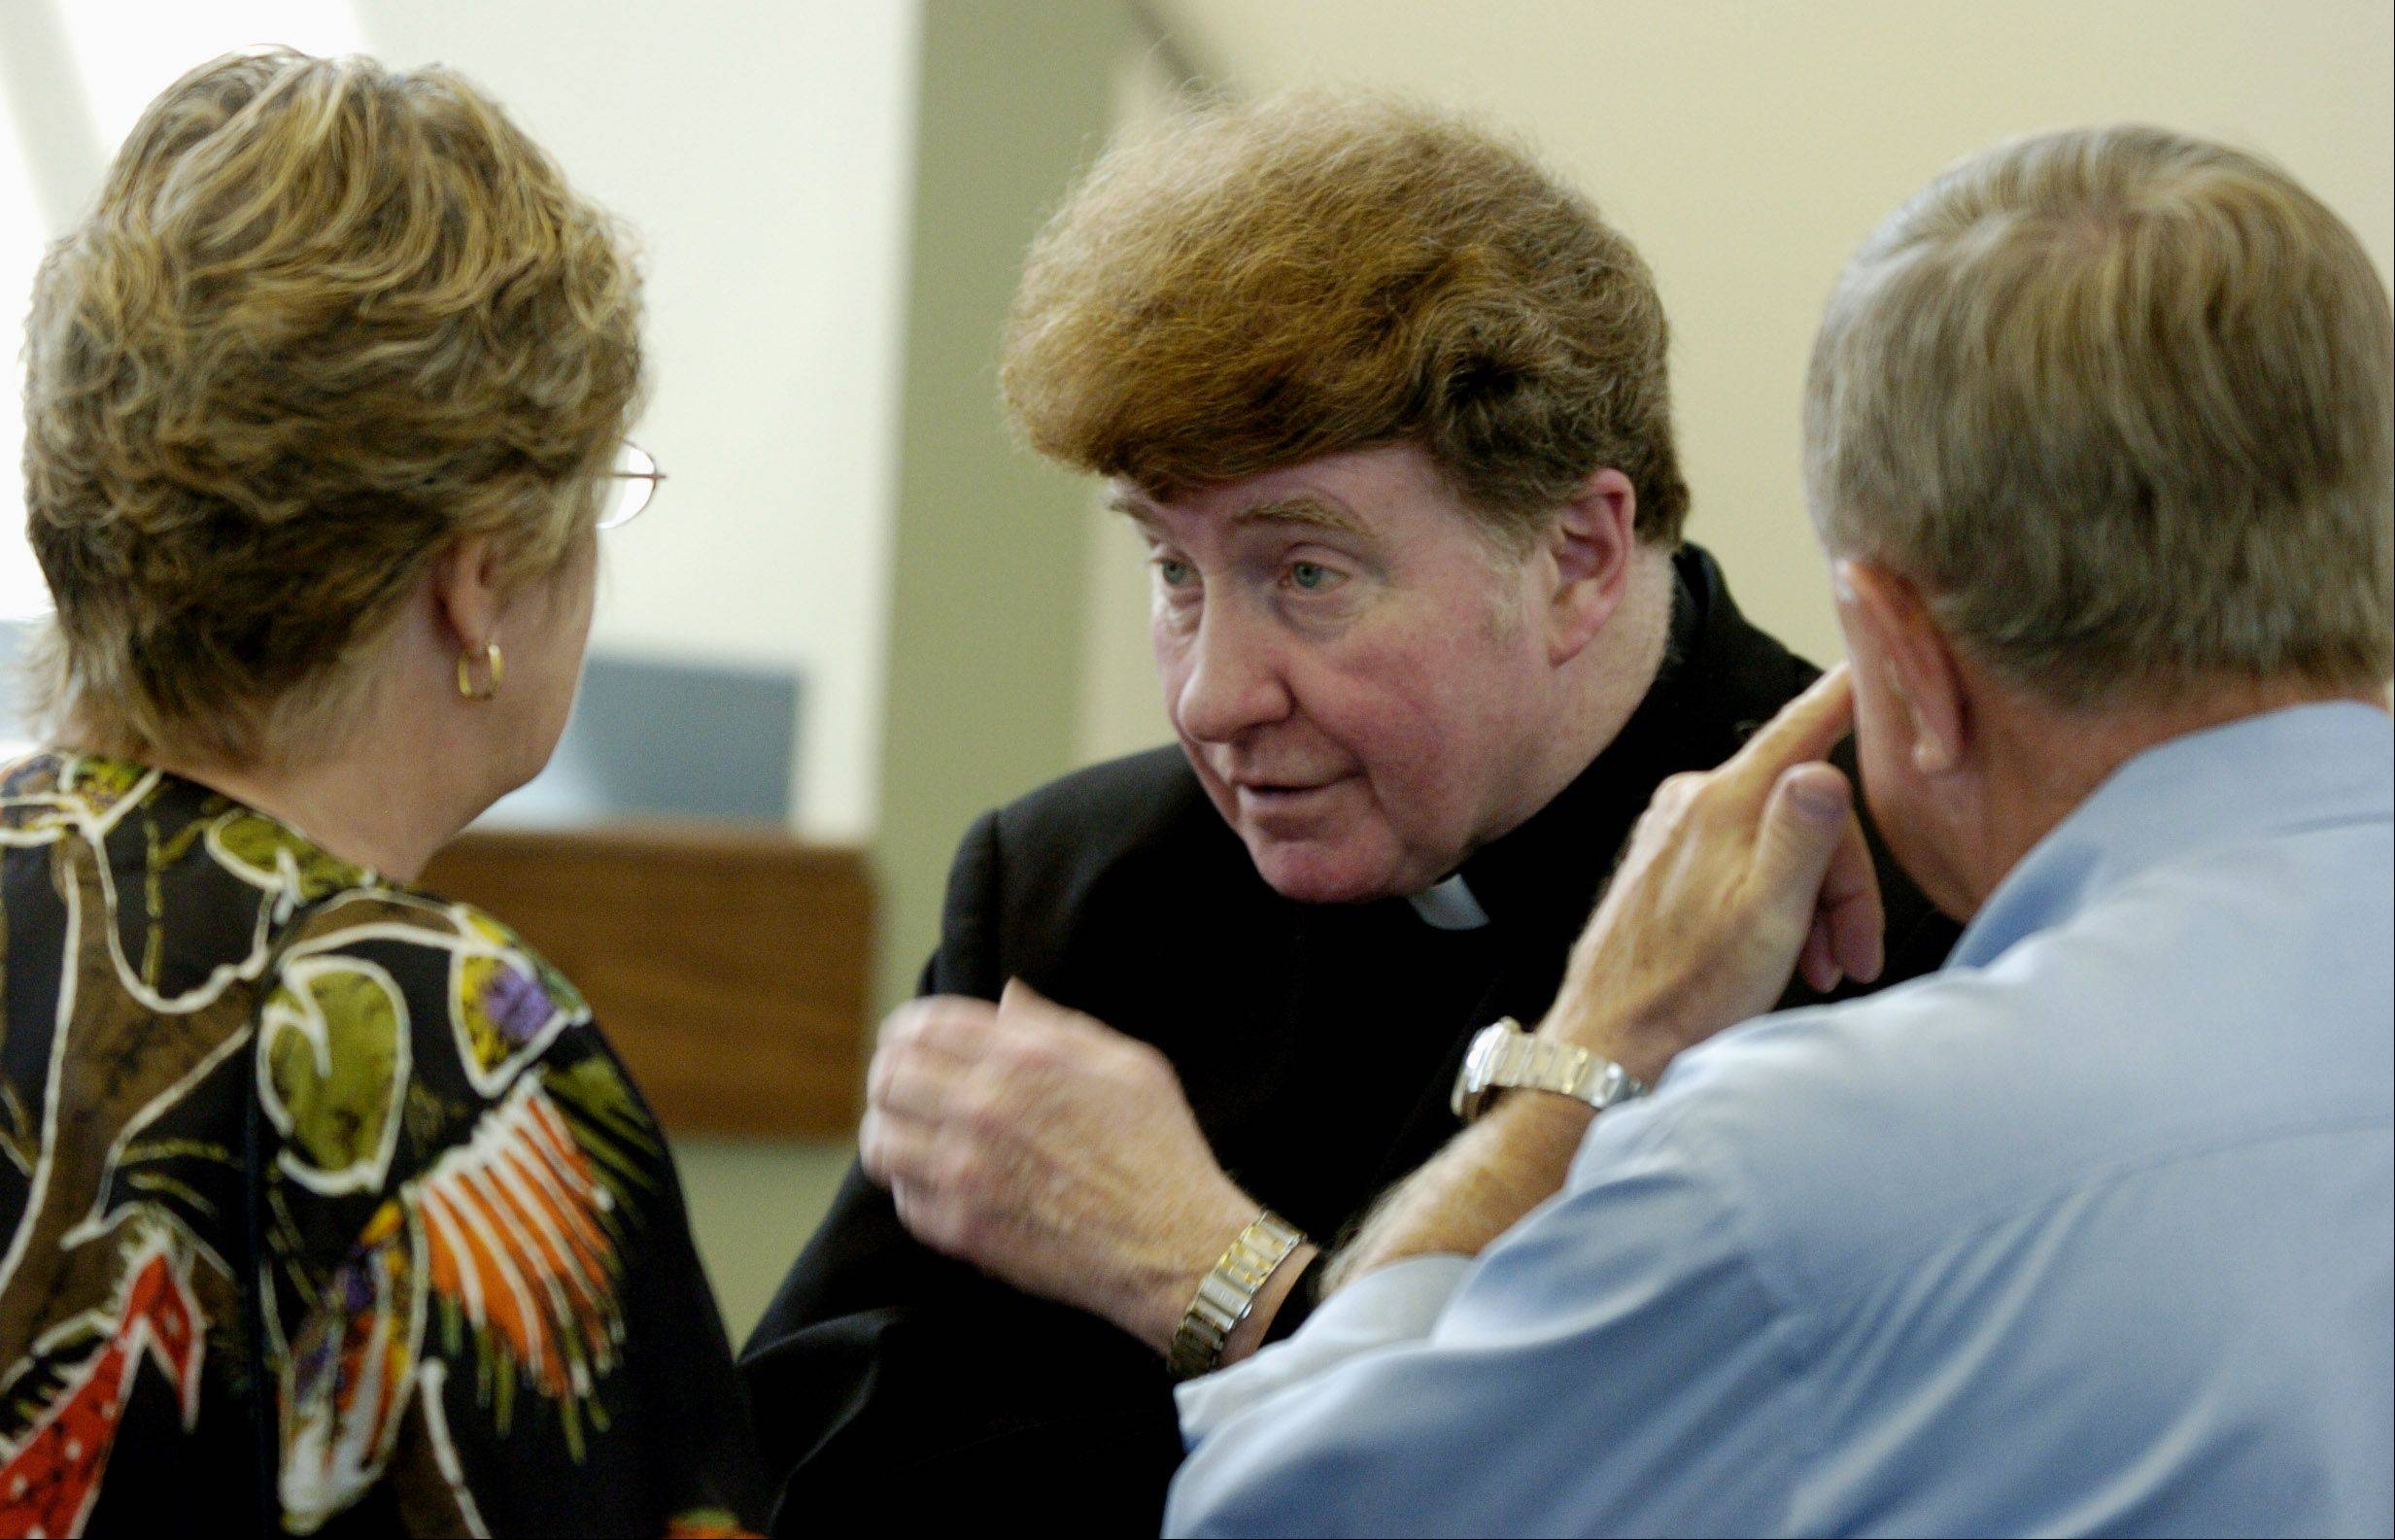 The Rev. Patrick Brennan, shown here speaking with parishioners at Holy Family Parish in Inverness after the dedication of a parish center bearing his name, died Saturday at 66. He's being remembered as an inspirational leader and speaker who helped grow the church by more than 1,000 families.